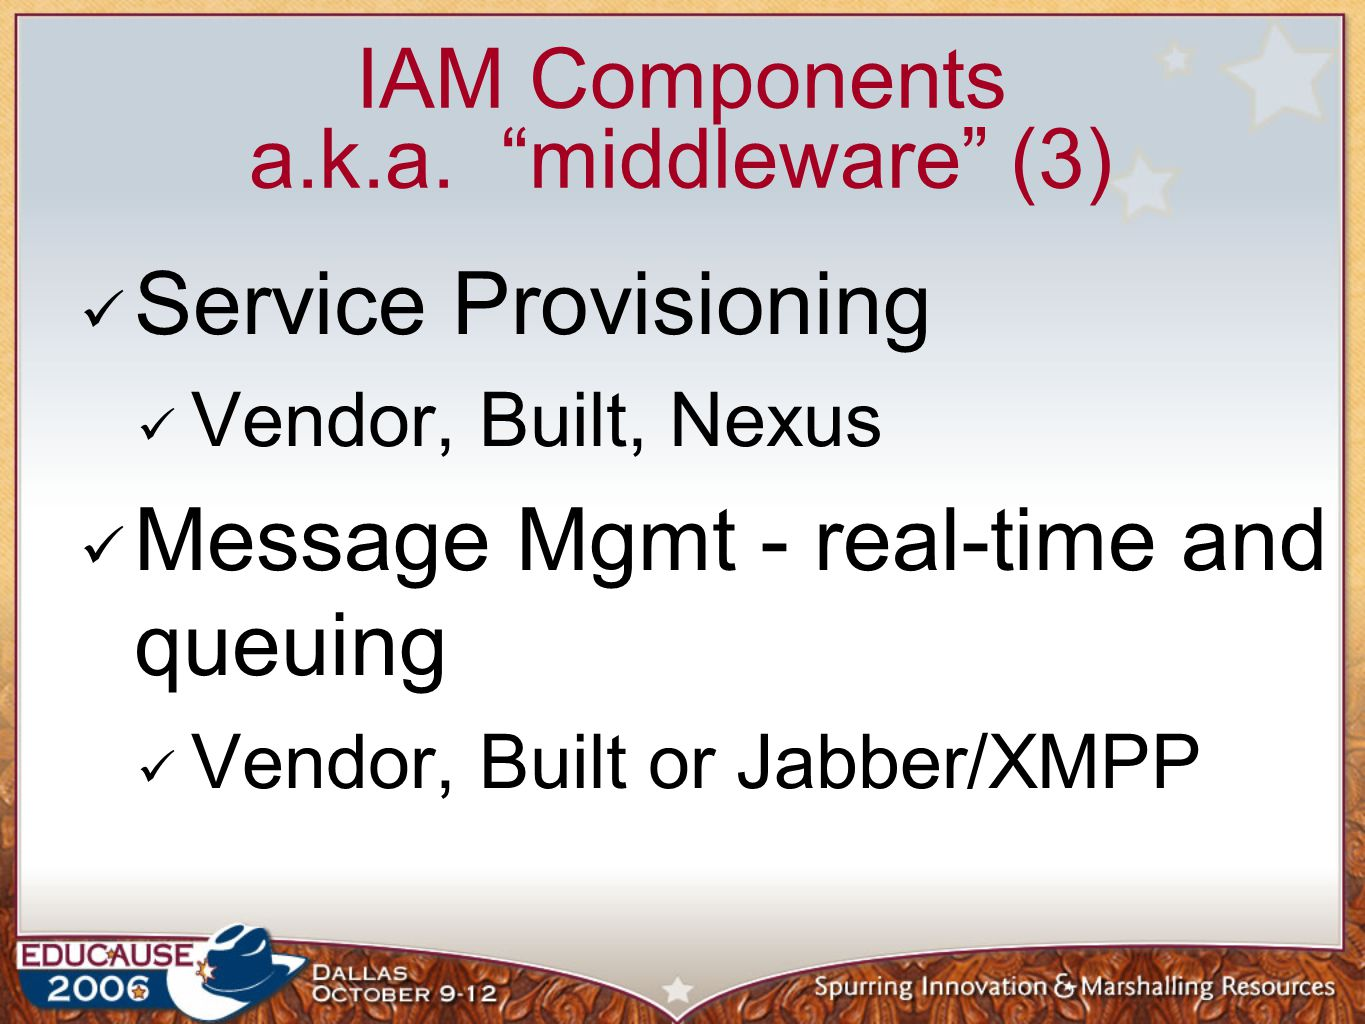 """IAM Components a.k.a. """"middleware"""" (3) Service Provisioning Vendor, Built, Nexus Message Mgmt - real-time and queuing Vendor, Built or Jabber/XMPP"""